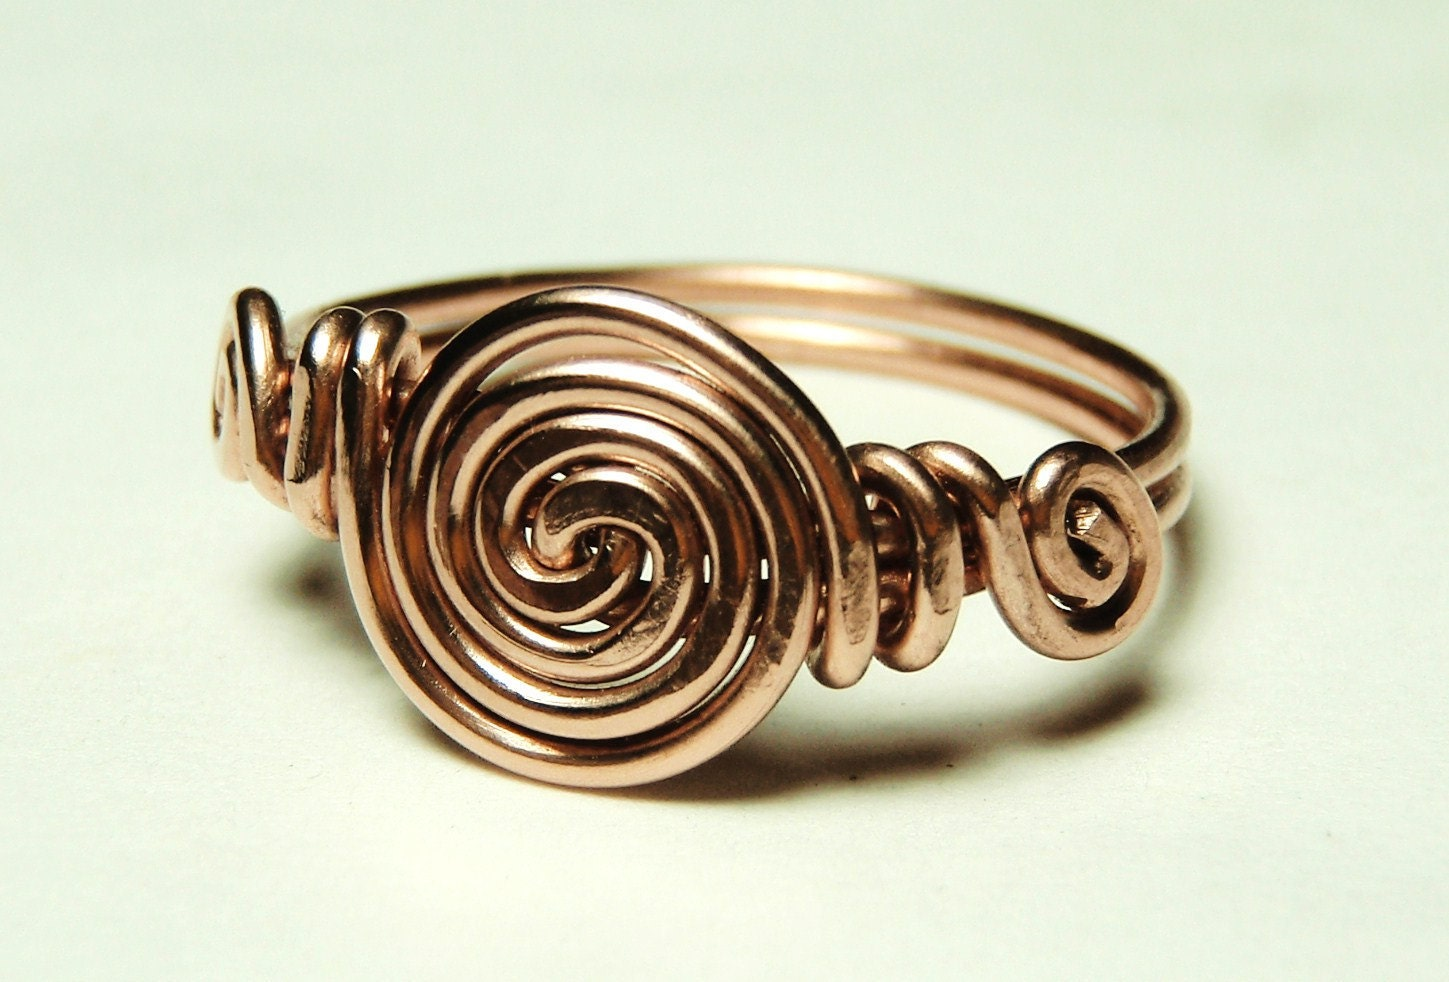 curls copper wire ring custom size 5 to 12 handmade by keoops8